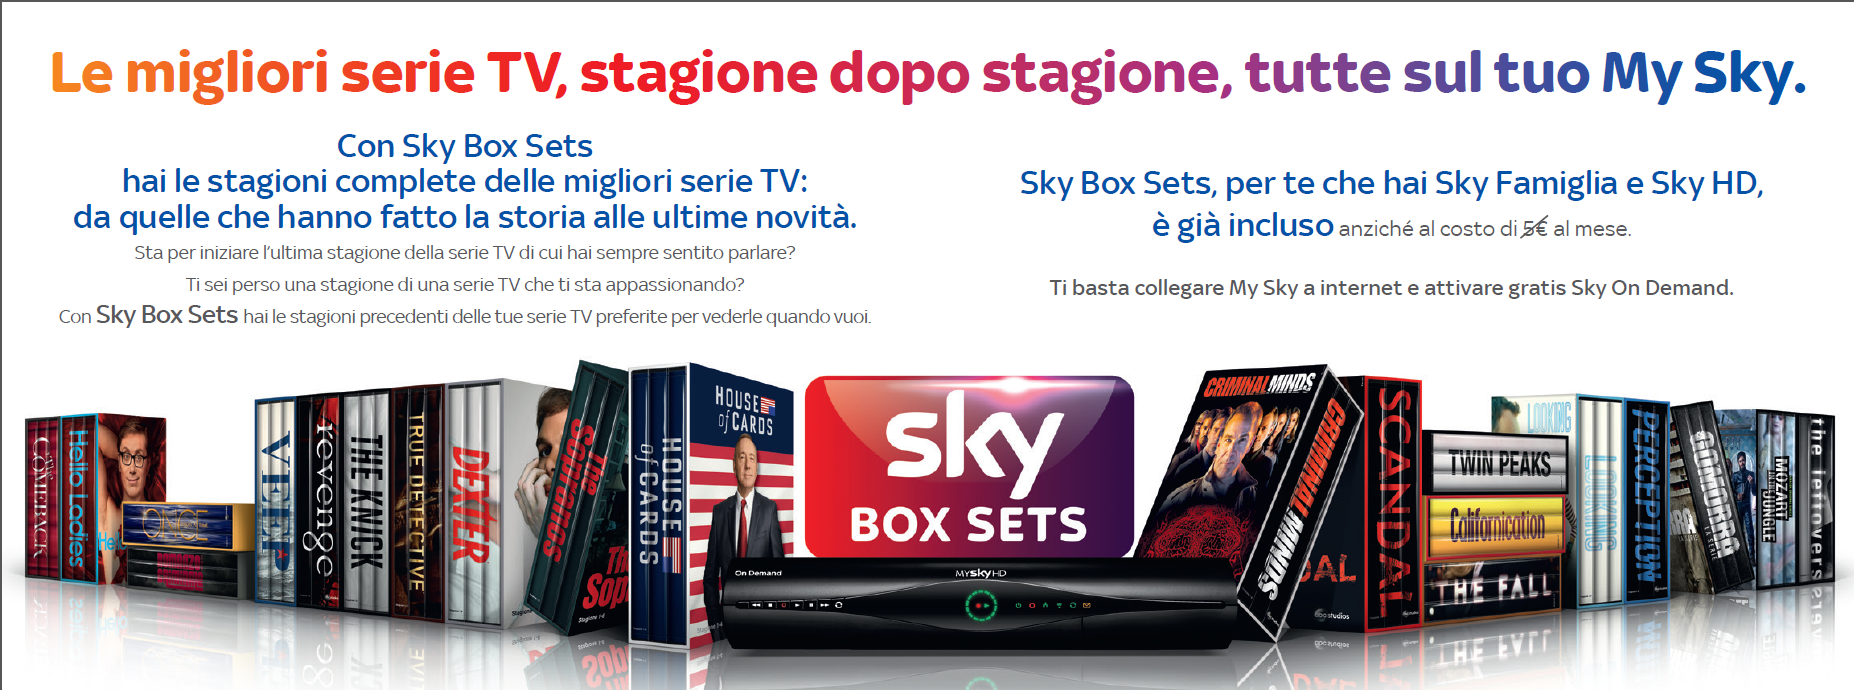 sky-box-sets-serie-tv-complete